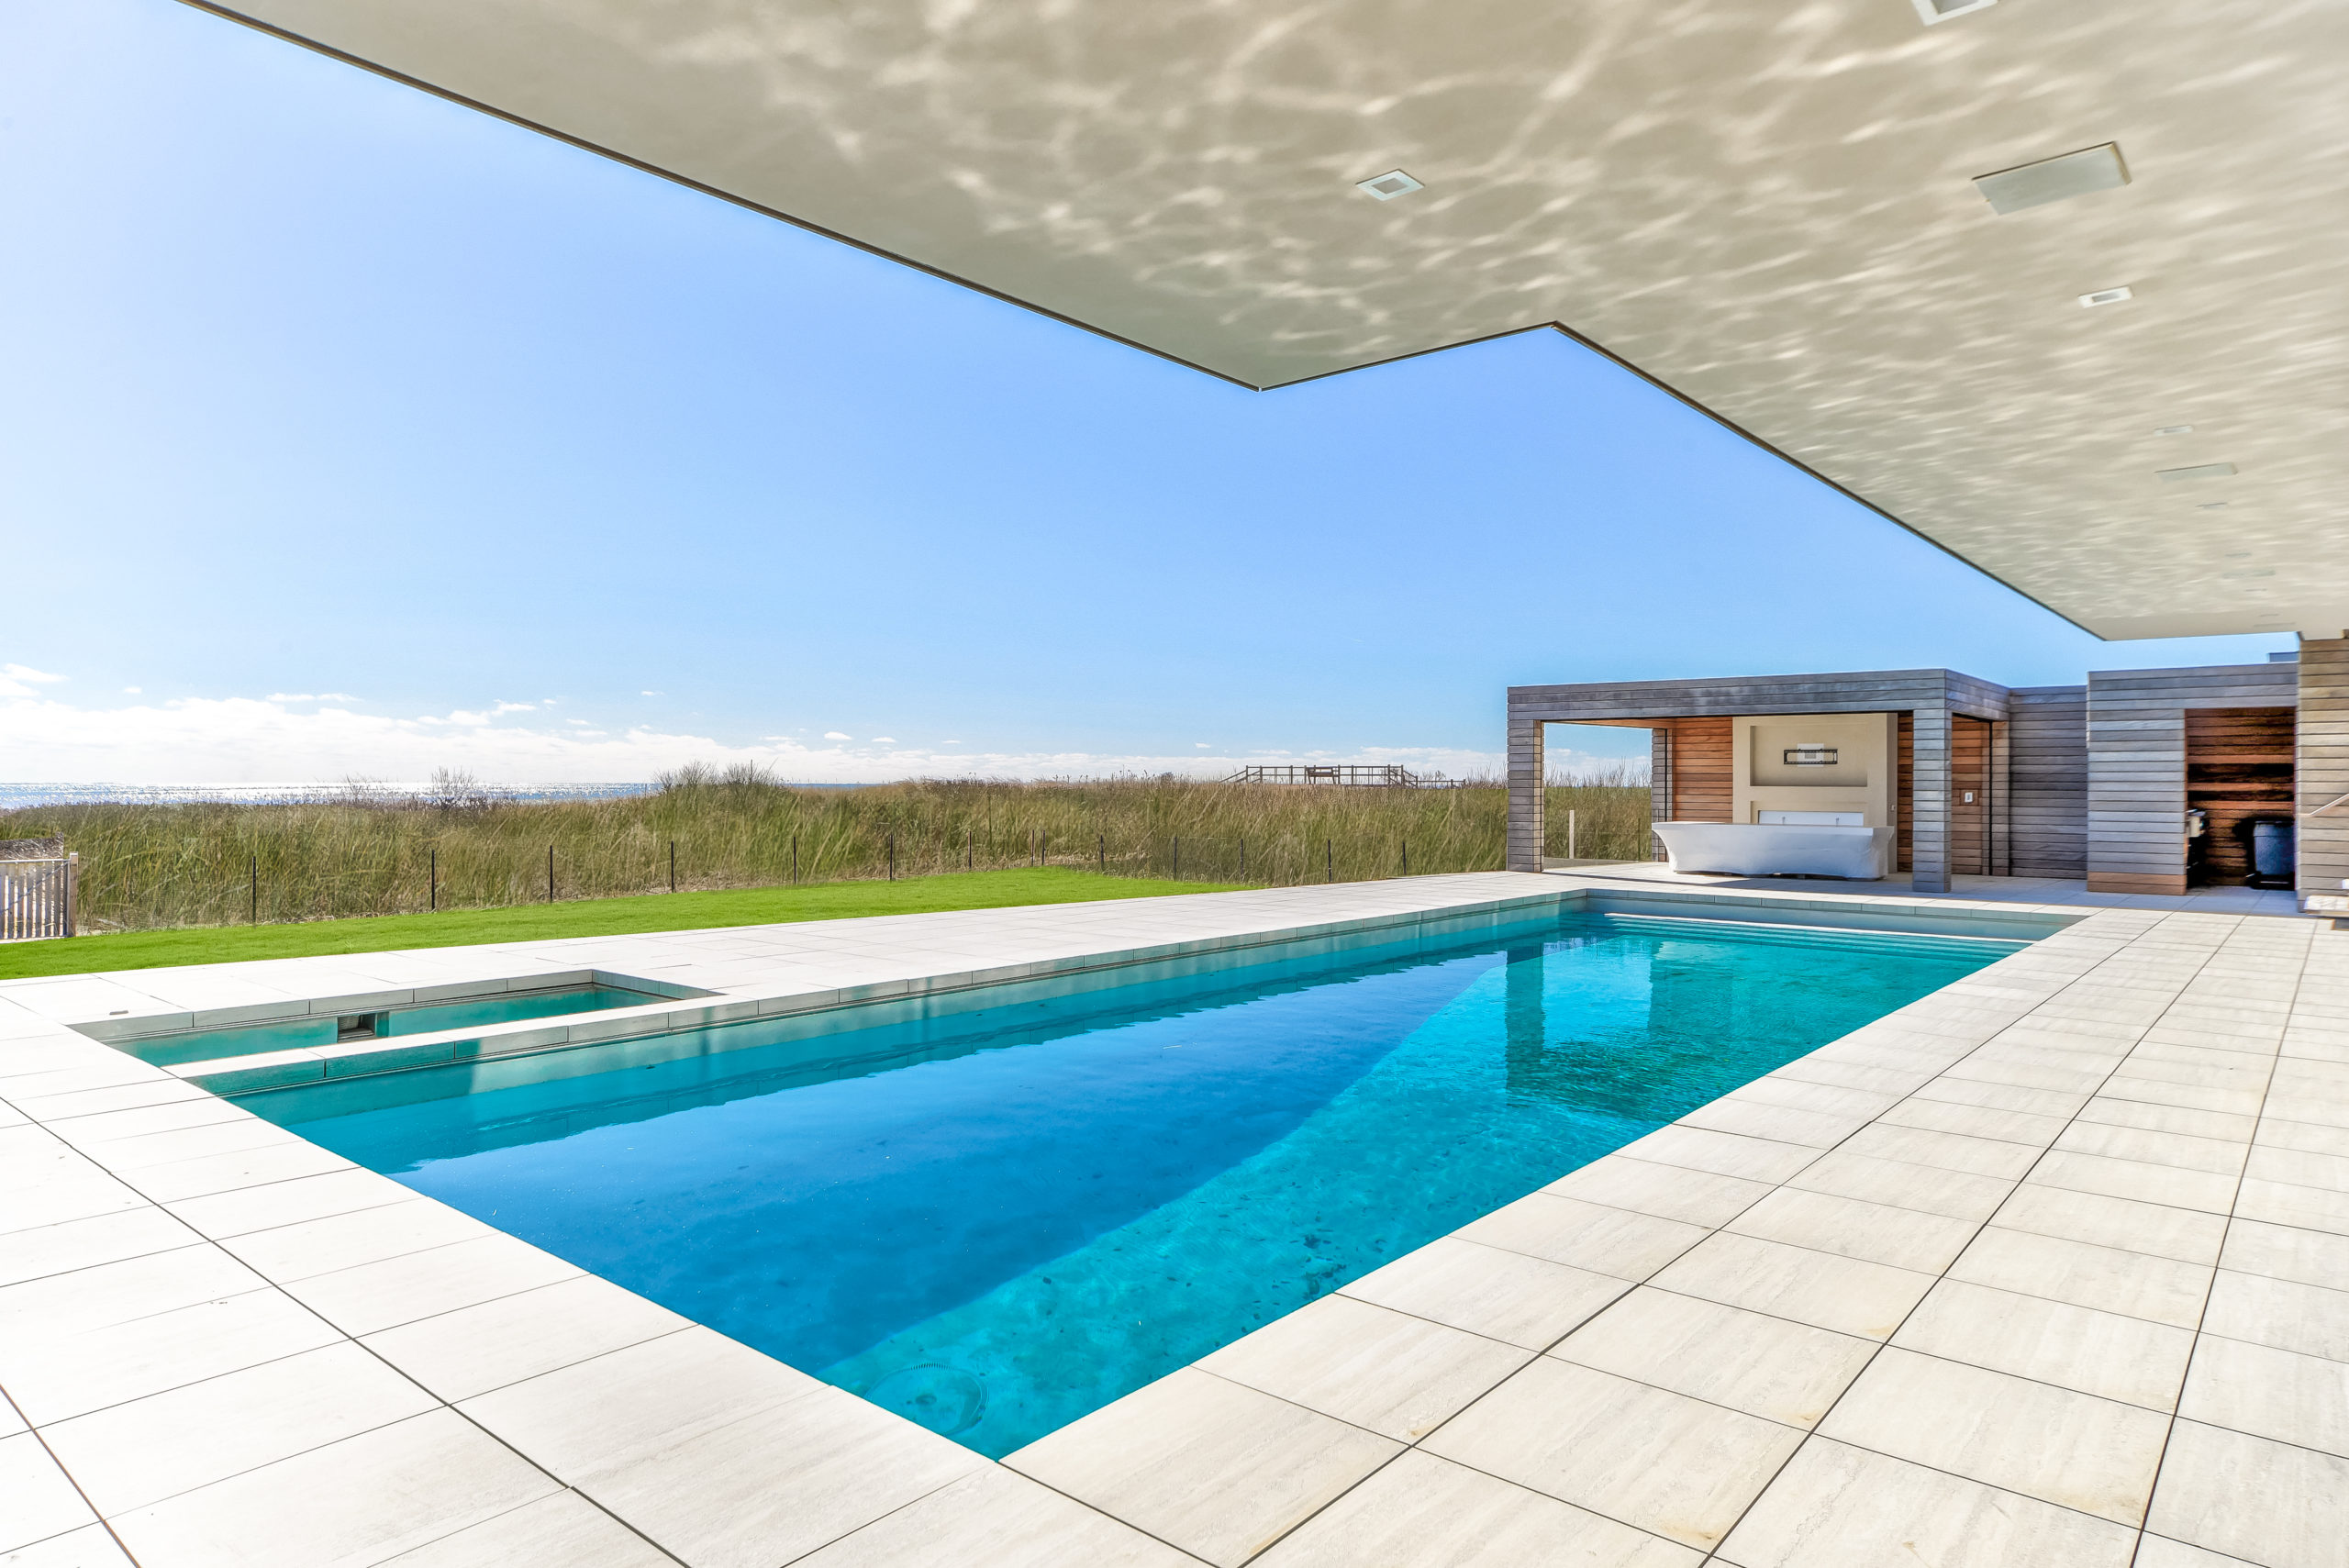 277 Surfside Drive in Bridgehampton is asking for $1 million for a one-month rental.